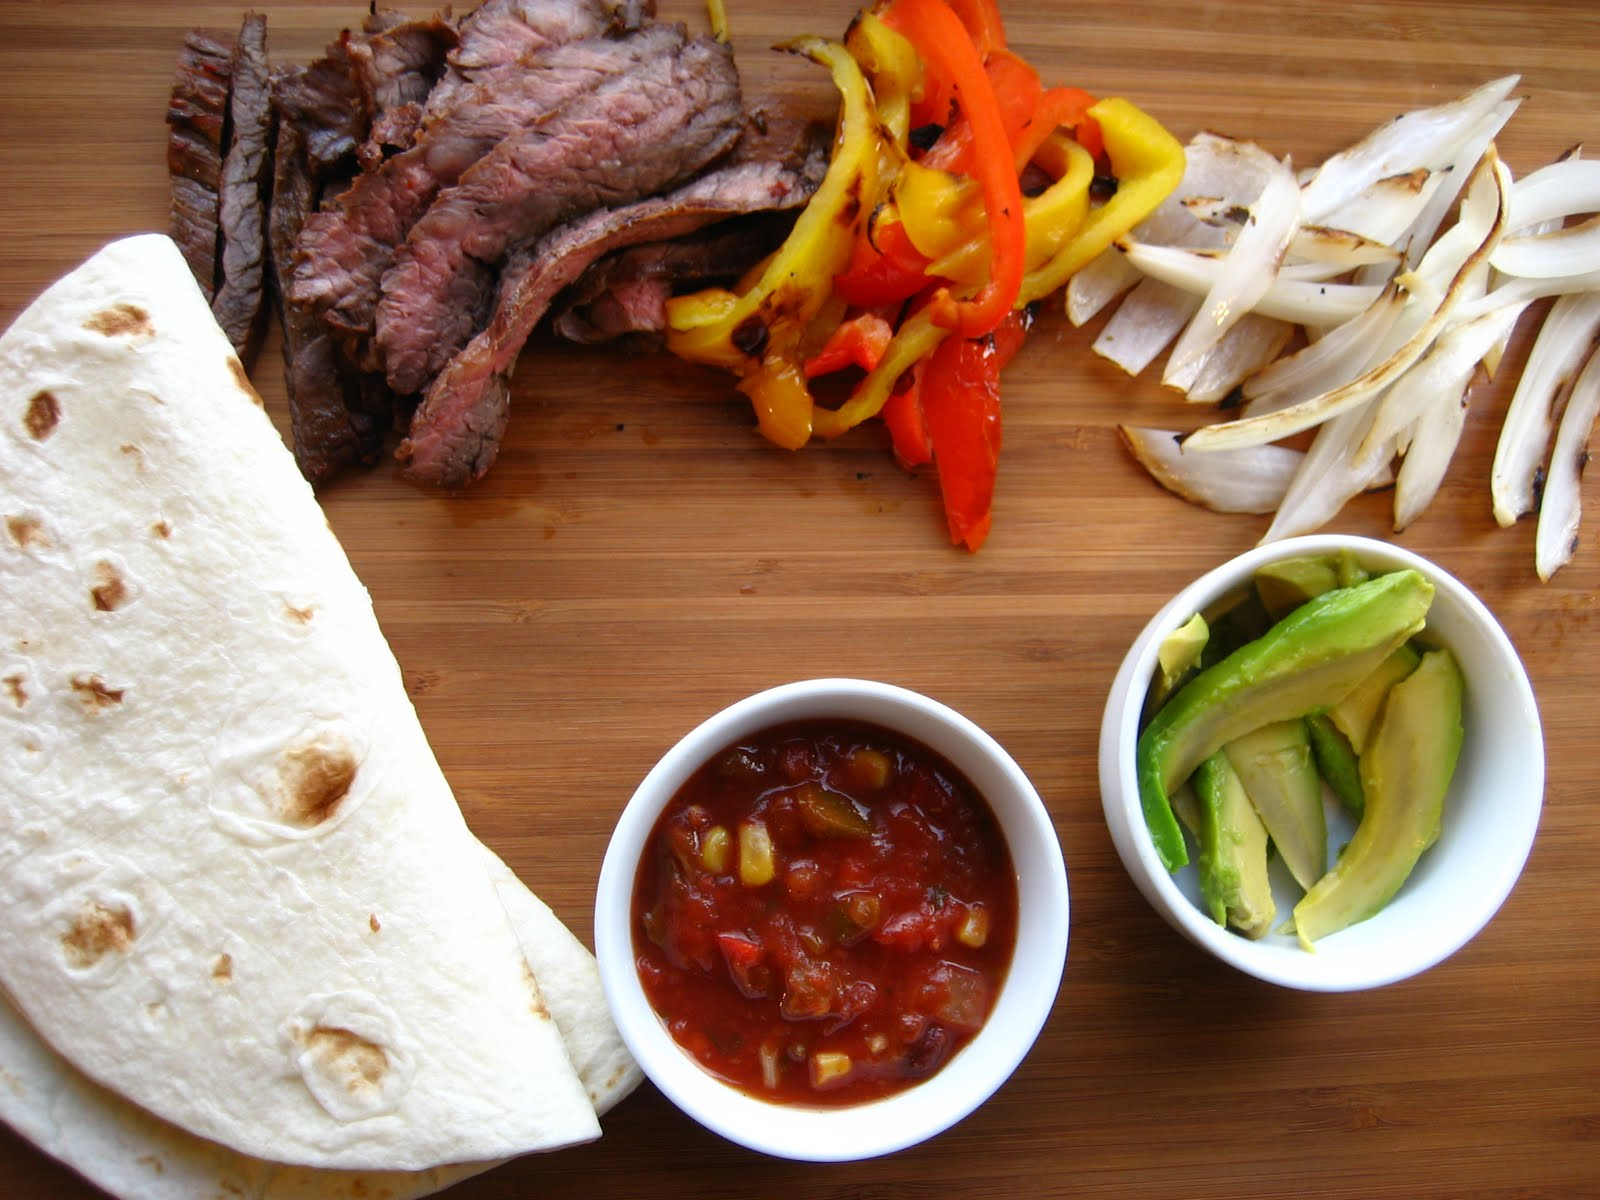 Home Cooking In Montana: Grilled Beef Fajitas